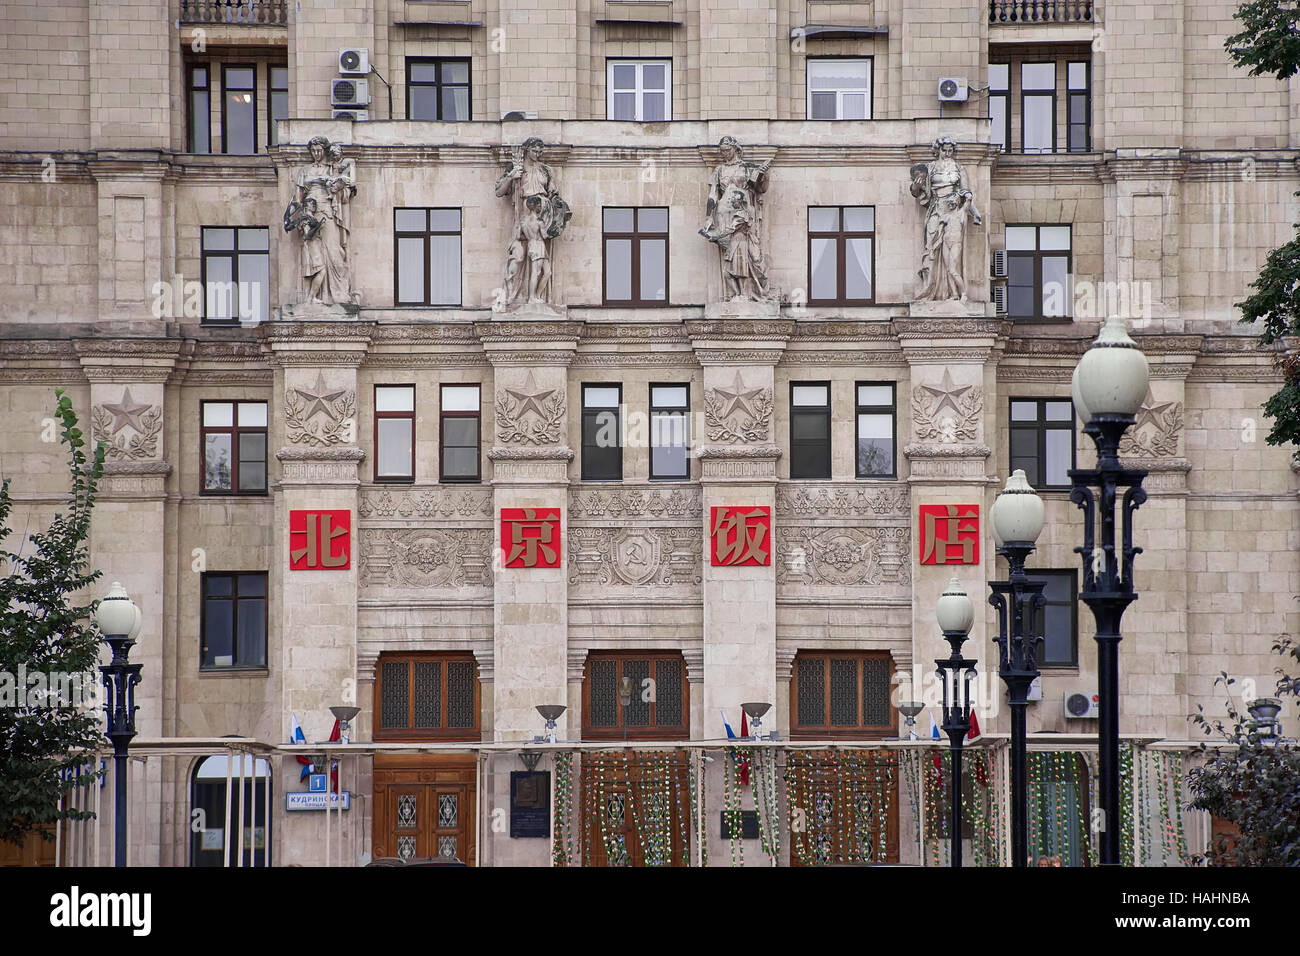 Moscow, Moscow region, RUSSIA - Sep 17.2016: Facade of the Stalinist skyscraper at Borovitskaya area. The scenery - Stock Image